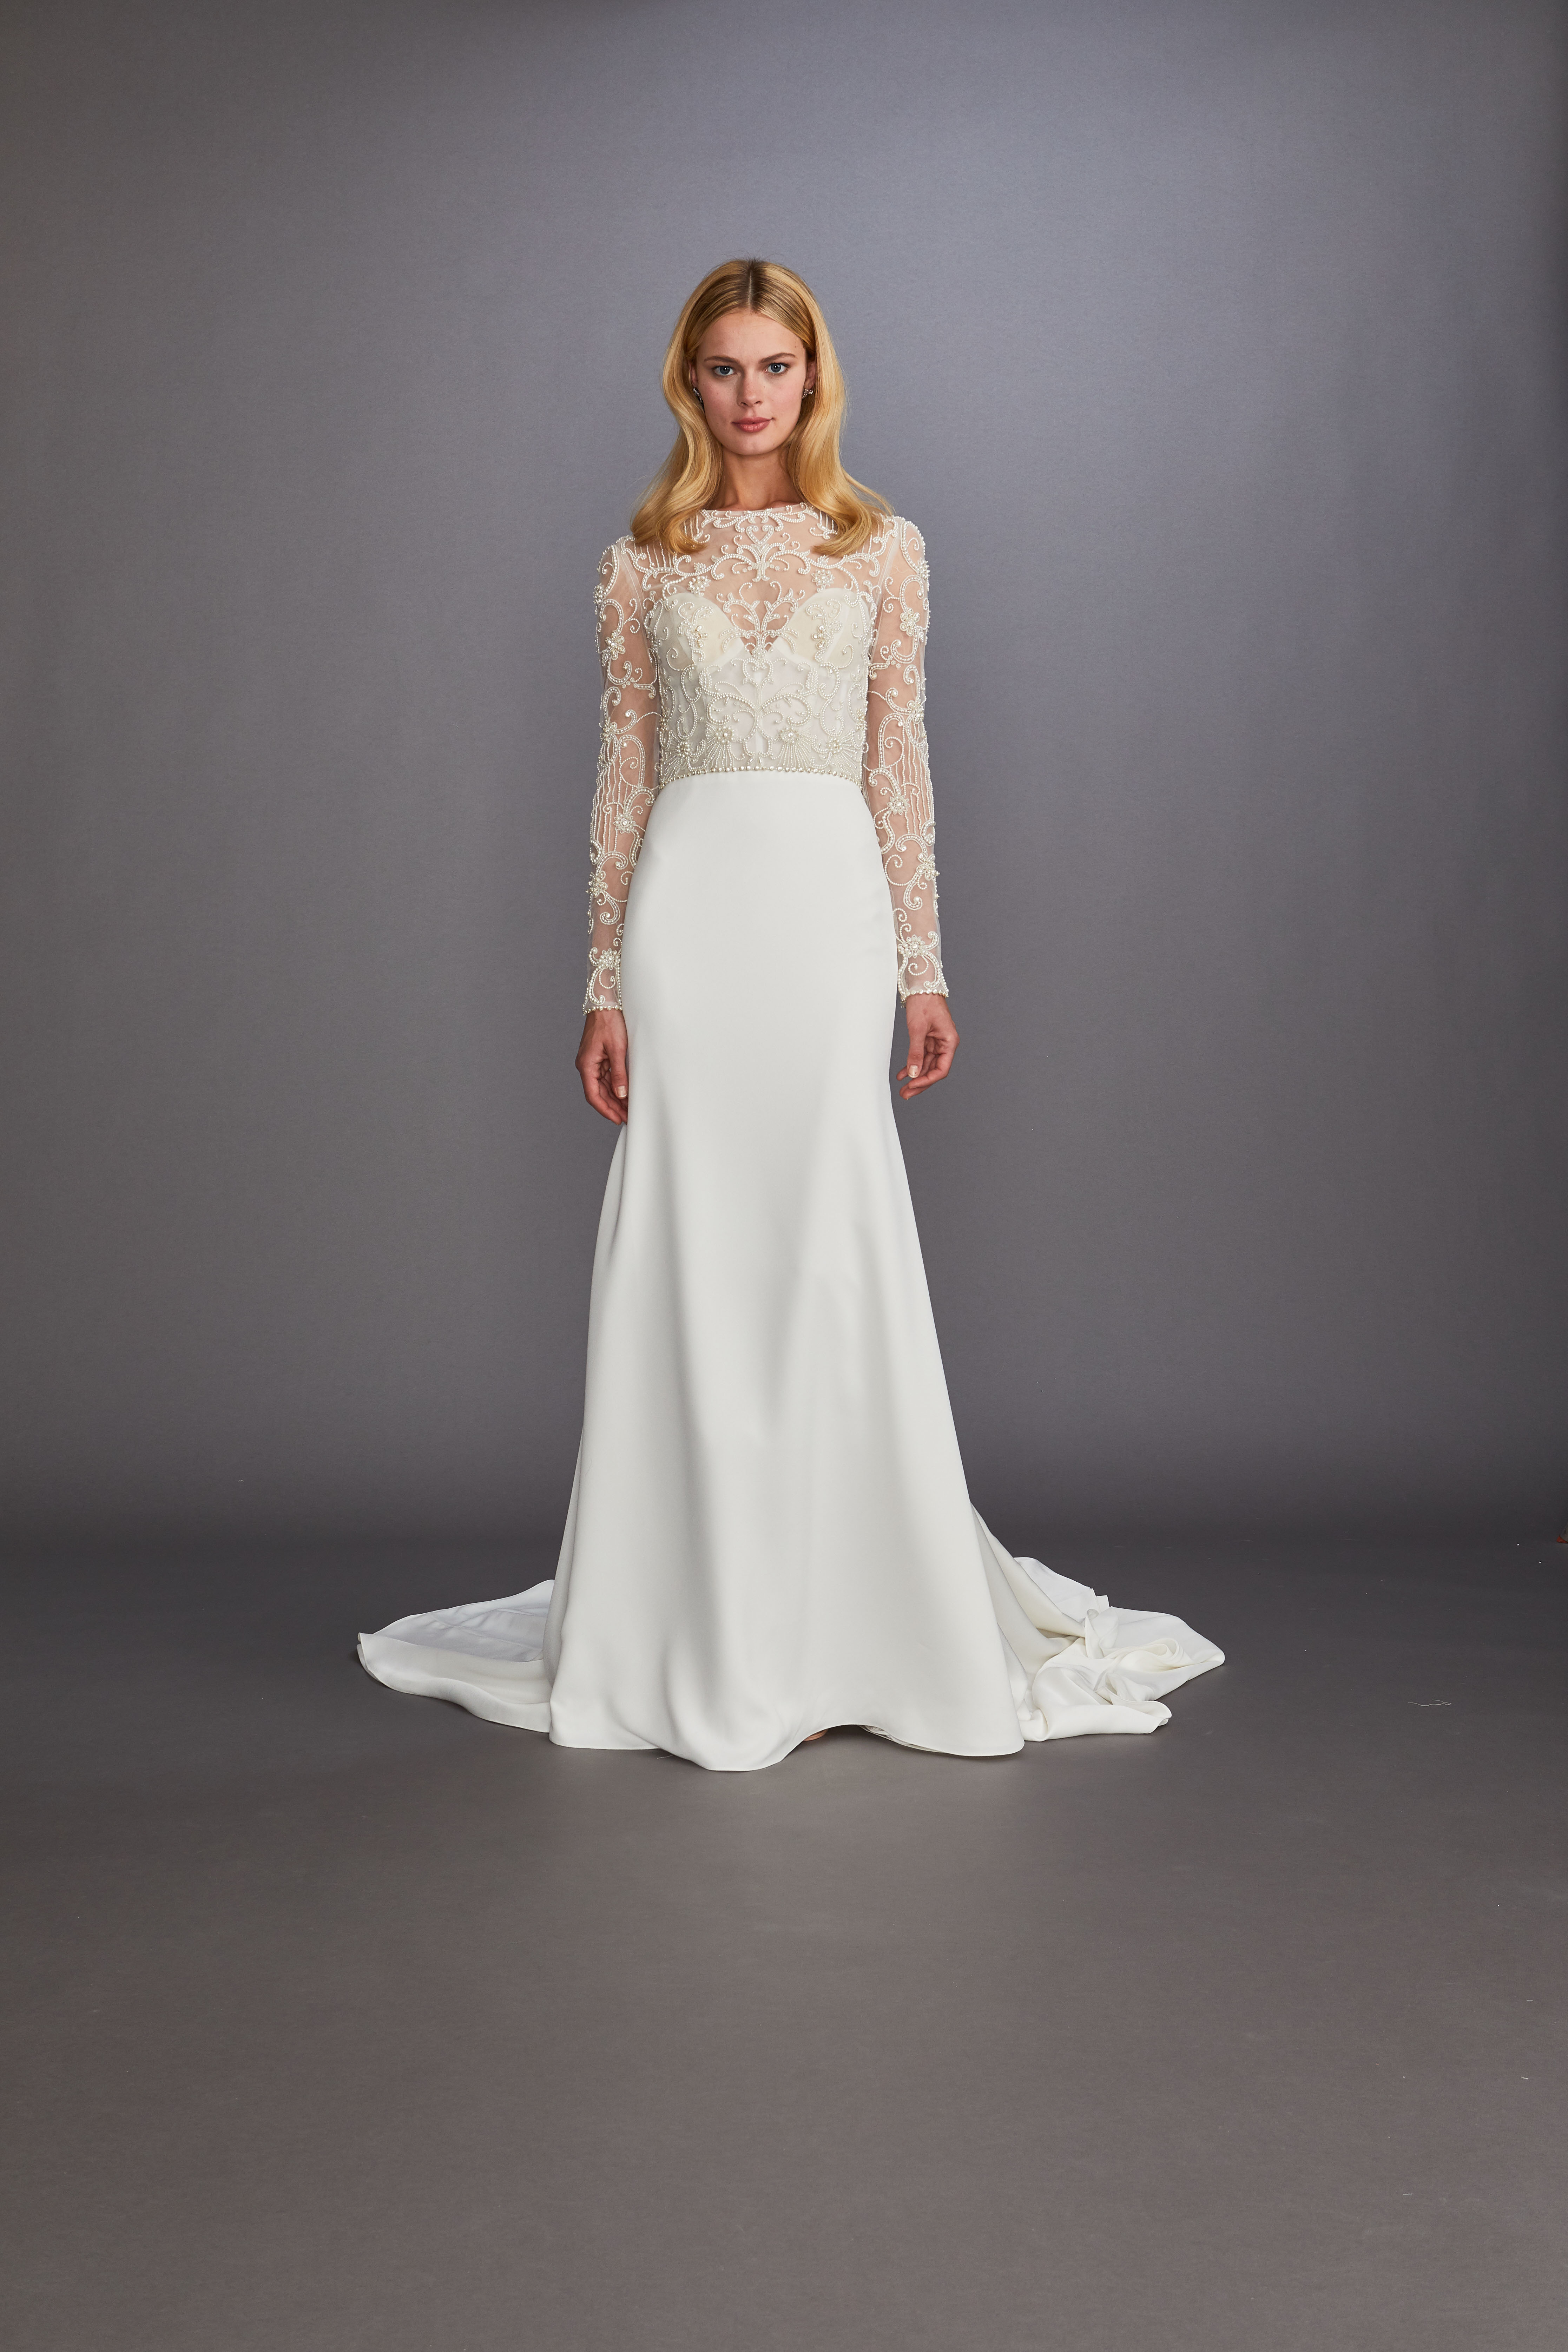 Lace Illusion jewel neck long sleeve a-line wedding dress Allison Webb Spring 2020